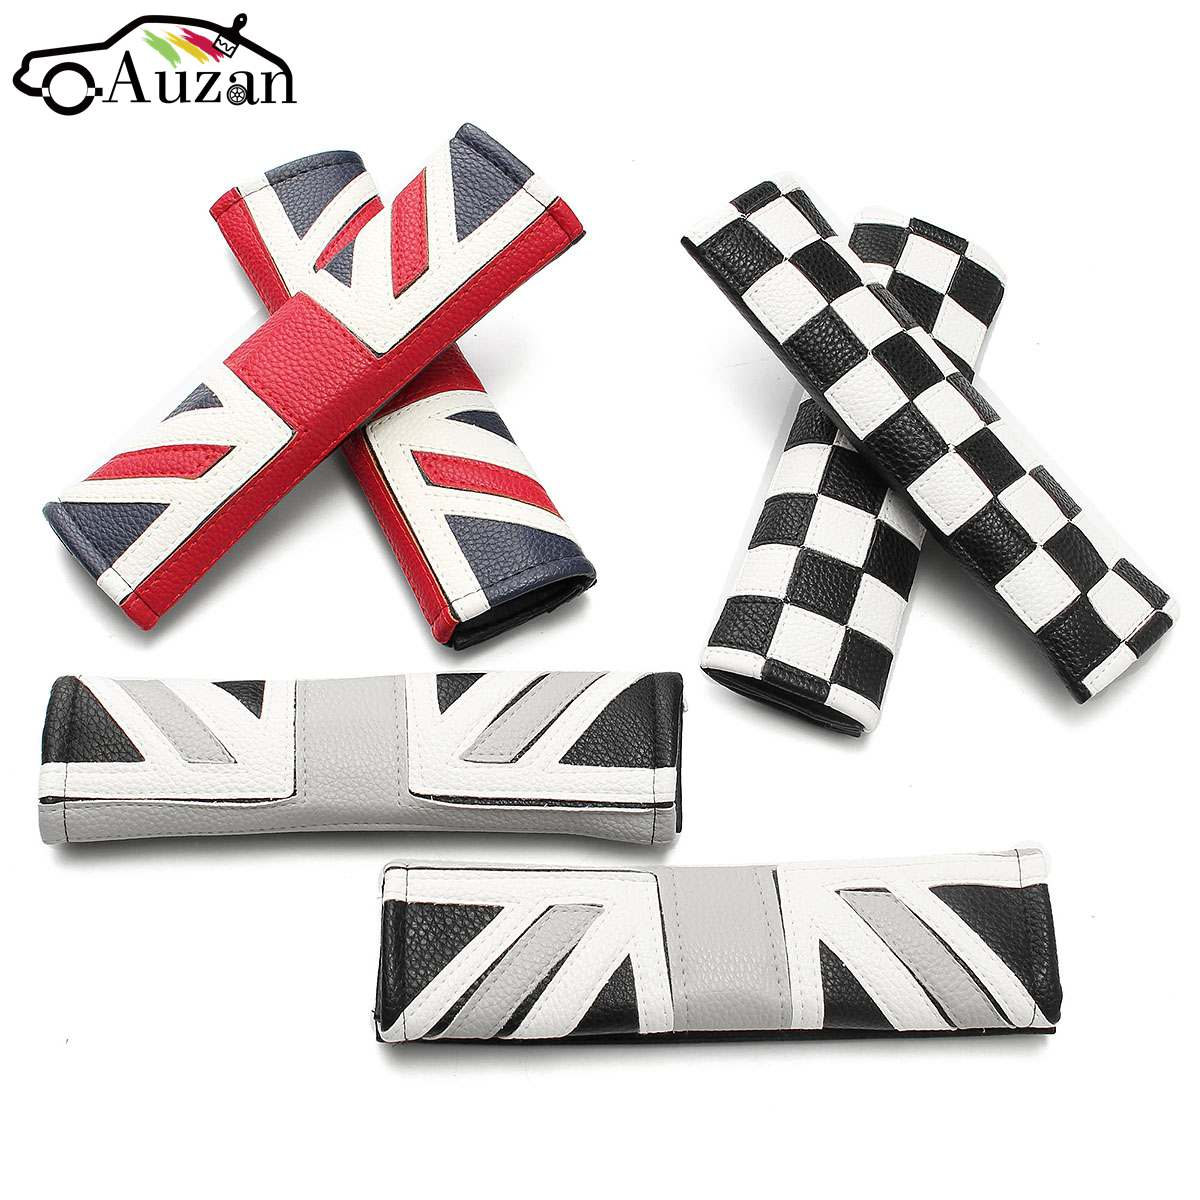 2pcs Union Jack Car Auto Safety Belts Padding Seat Belt Harness Shoulder Pad Cover Children Protection Covers Cushion Support